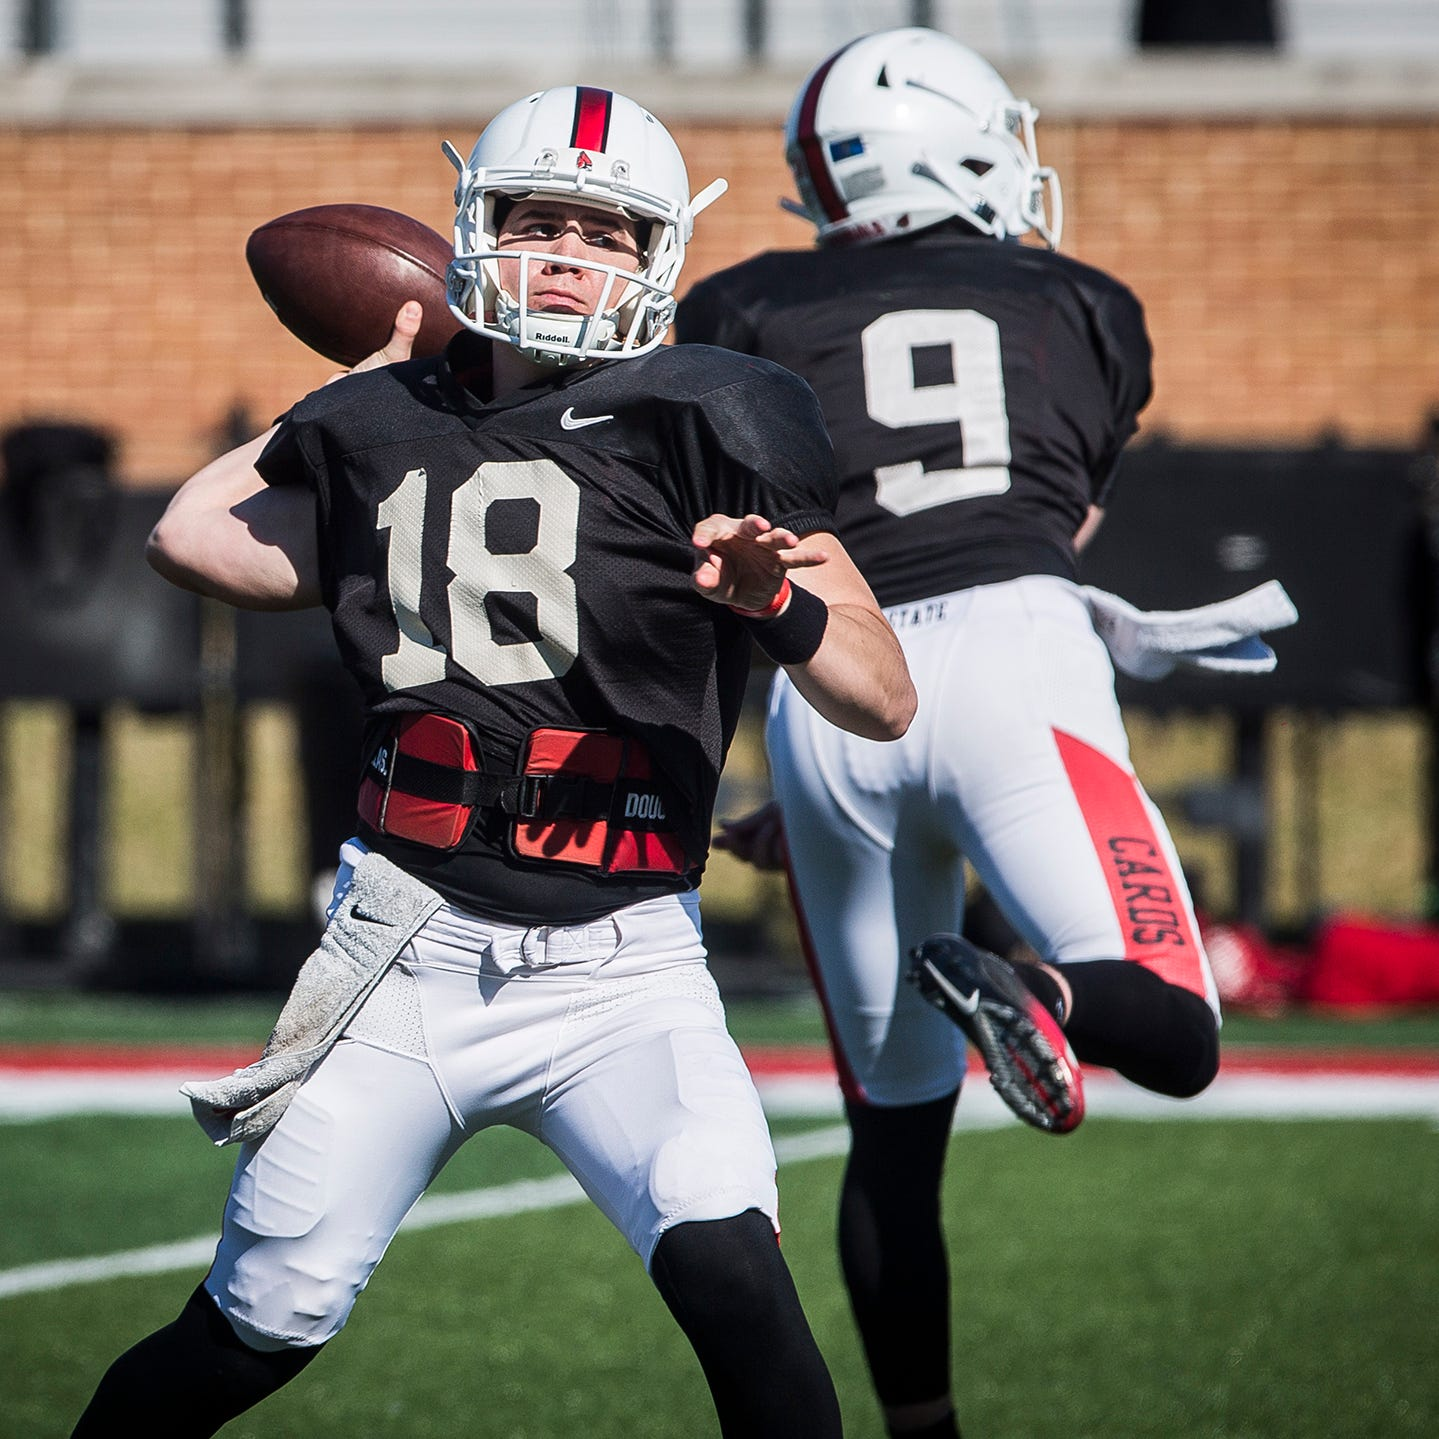 Meet Ball State football's undersized, confident quarterback who might replace Riley Neal